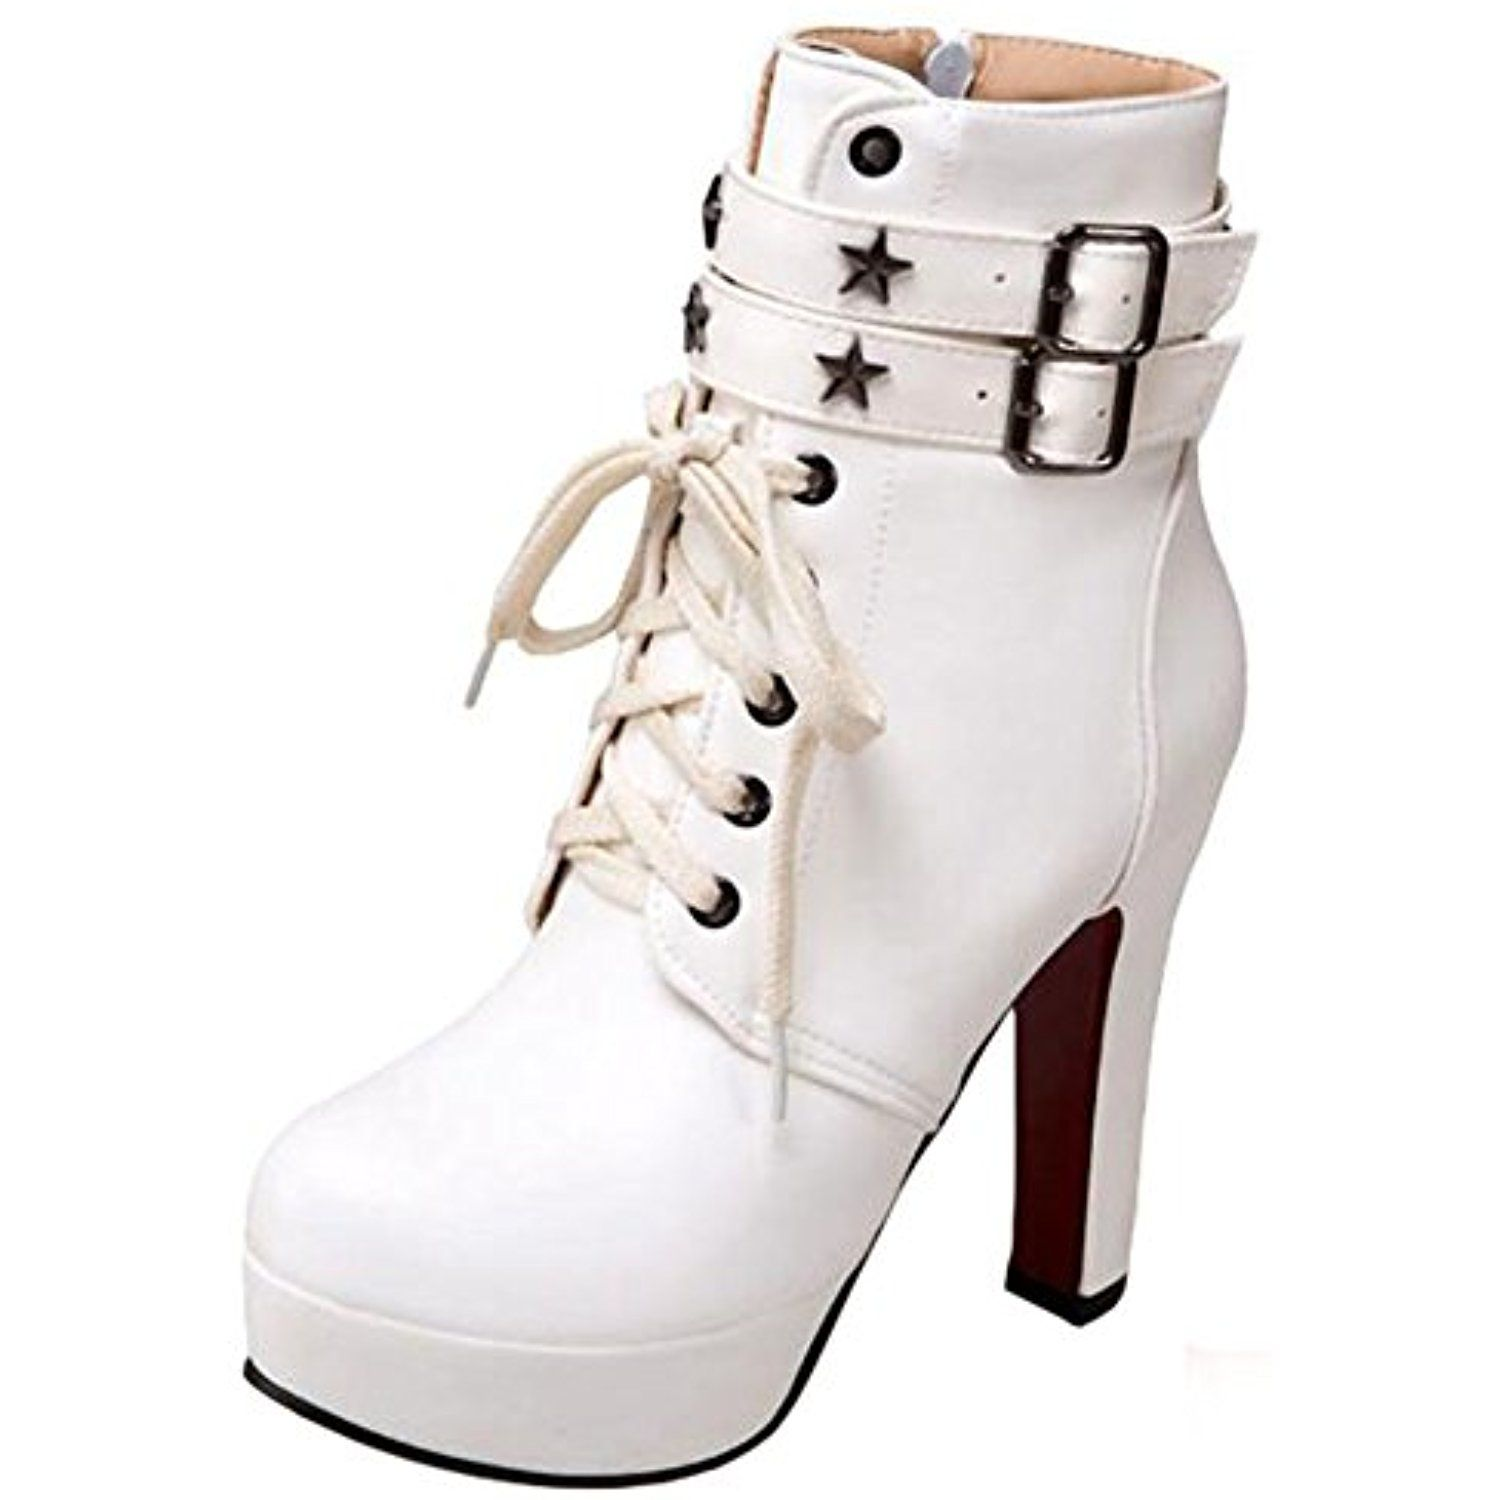 Women's Stylish Studded Stars Buckled Straps Round Toe Chunky High Heel Platform Lace up Zipper up Ankle Booties